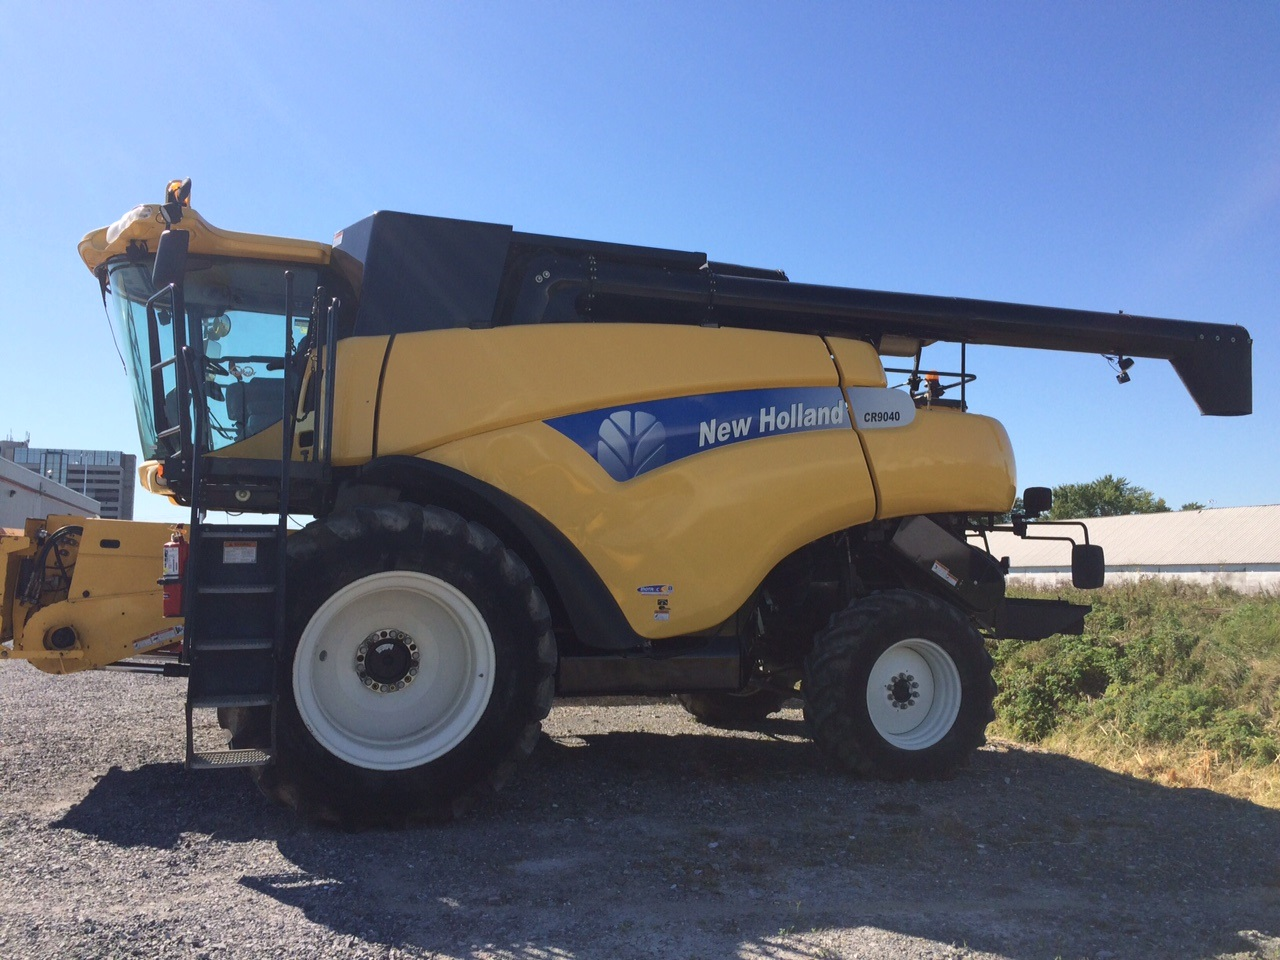 Moissonneuse-batteuse New Holland CR940